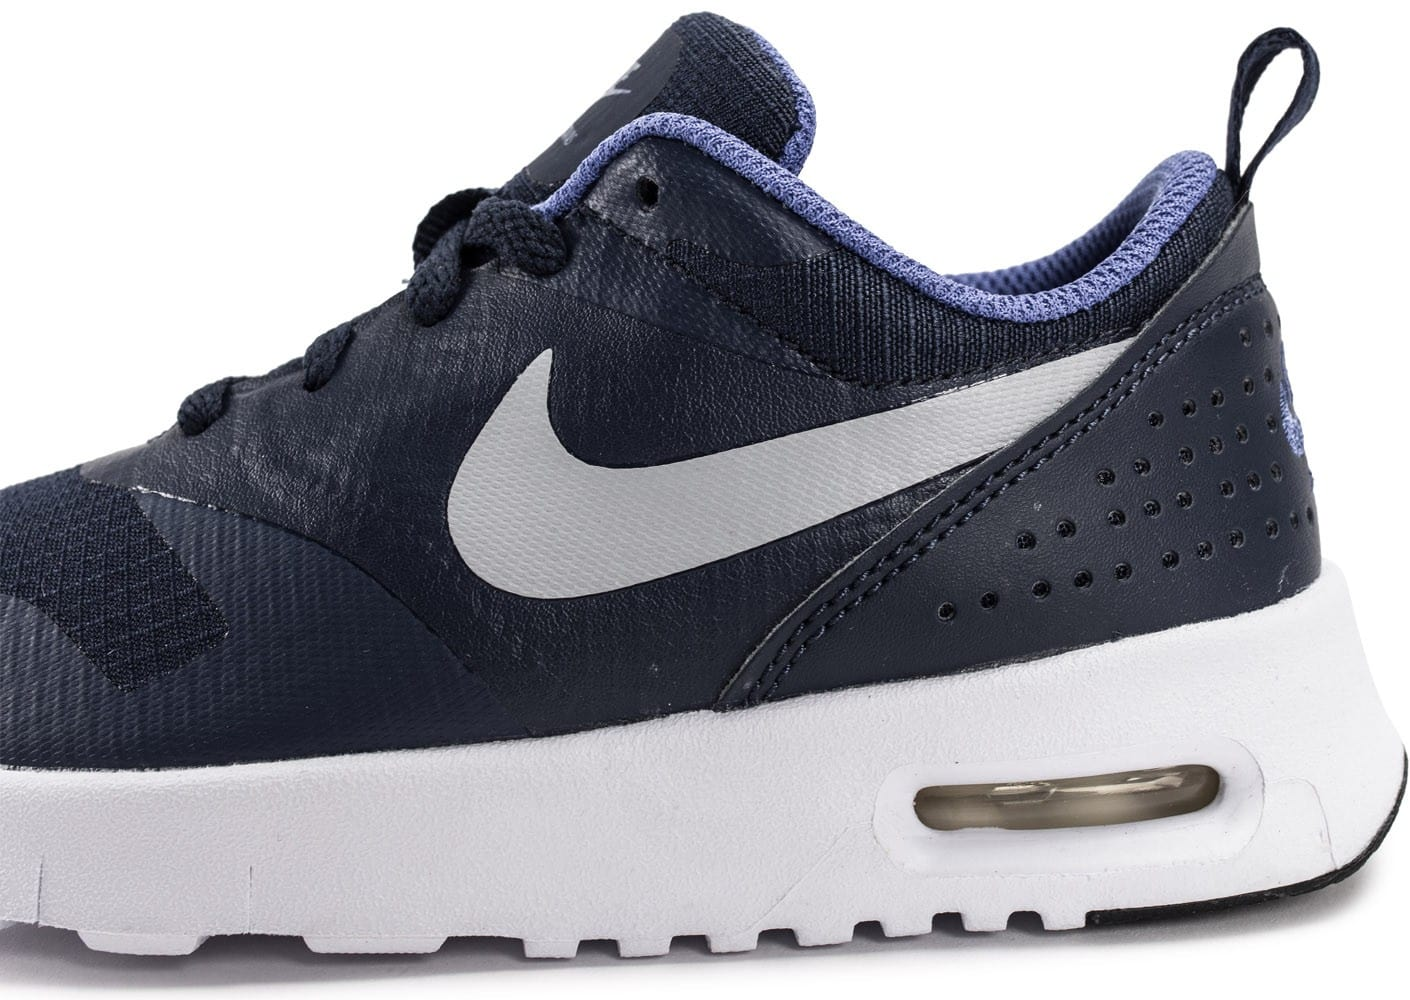 nike air max tavas enfant bleue chaussures enfant chausport. Black Bedroom Furniture Sets. Home Design Ideas